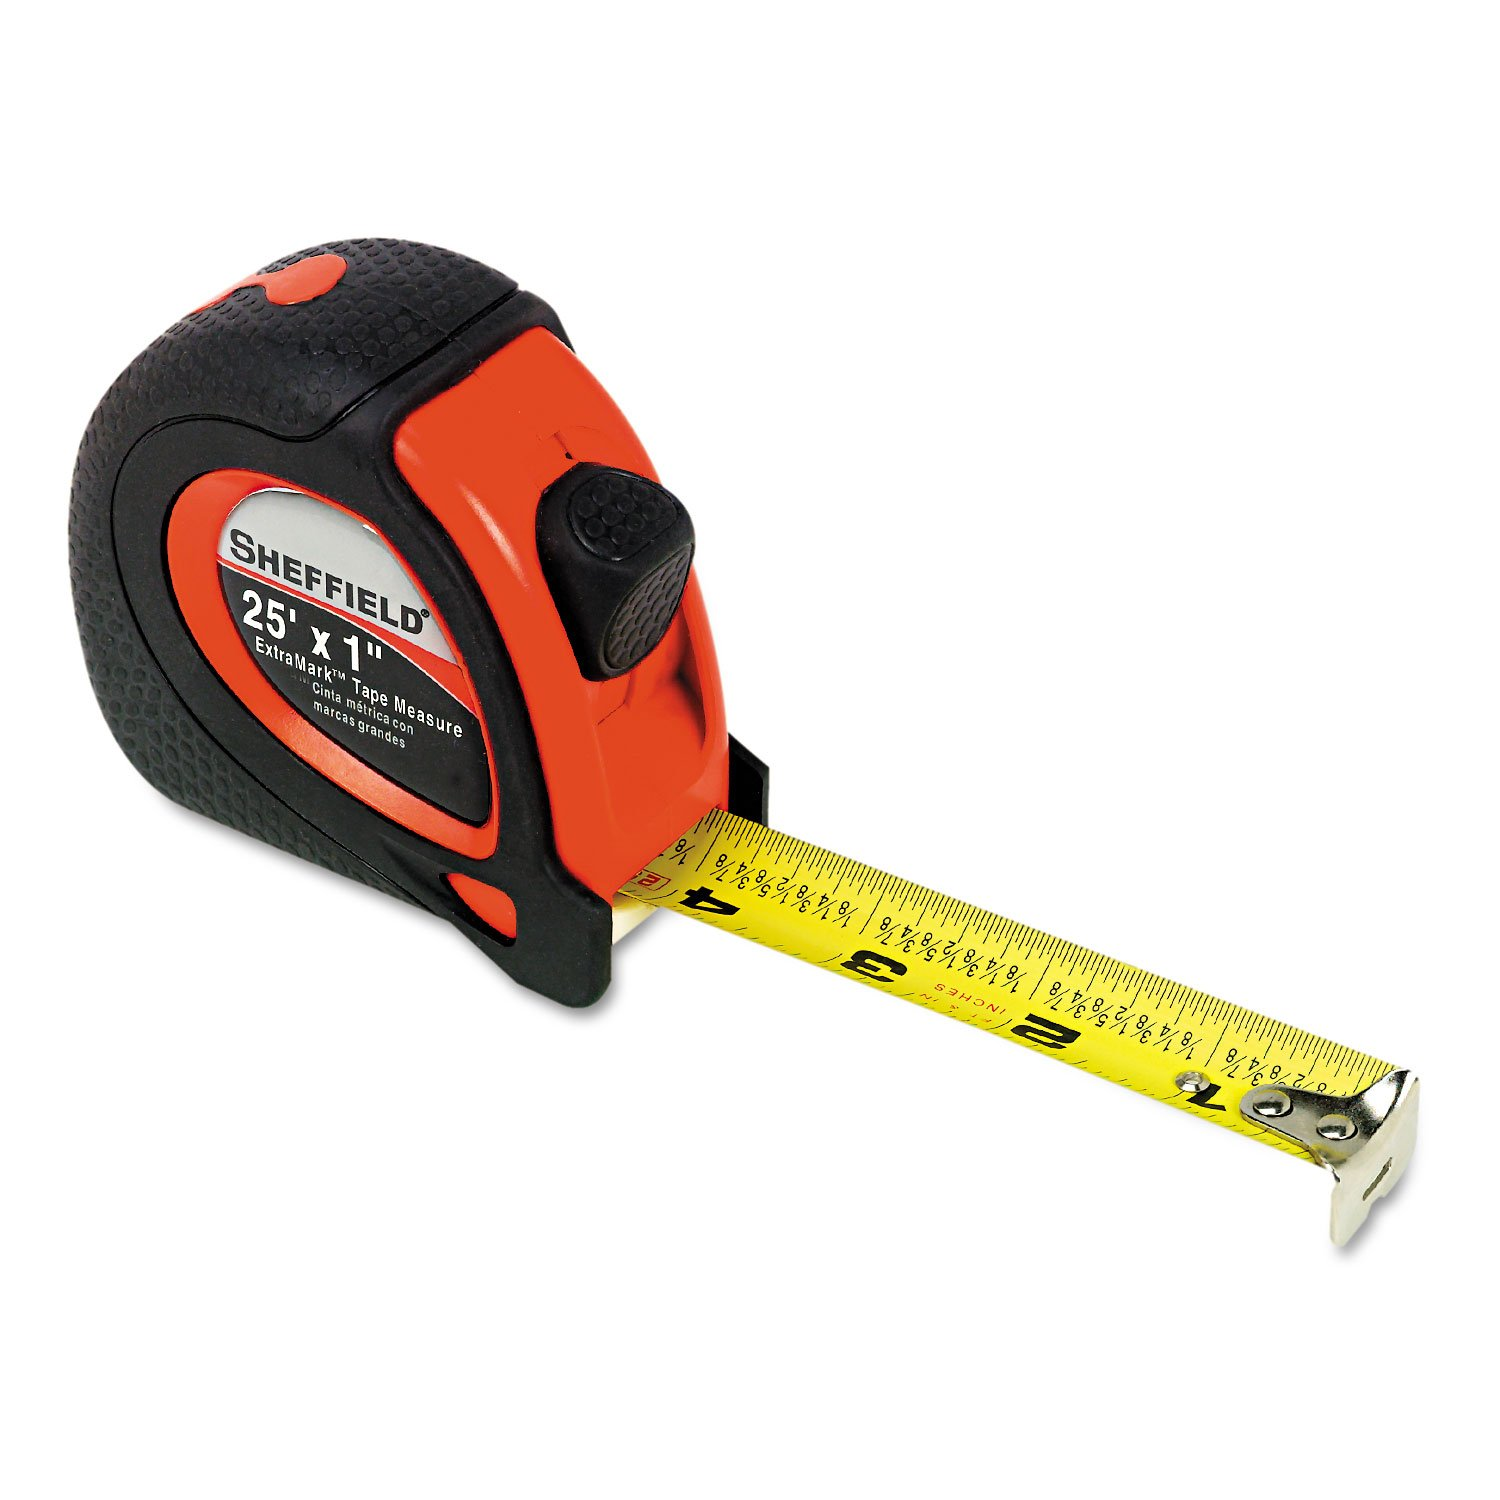 Great Neck 58652 Sheffield ExtraMark Tape Measure, Red with Black Rubber Grip, 1'' x 25 ft